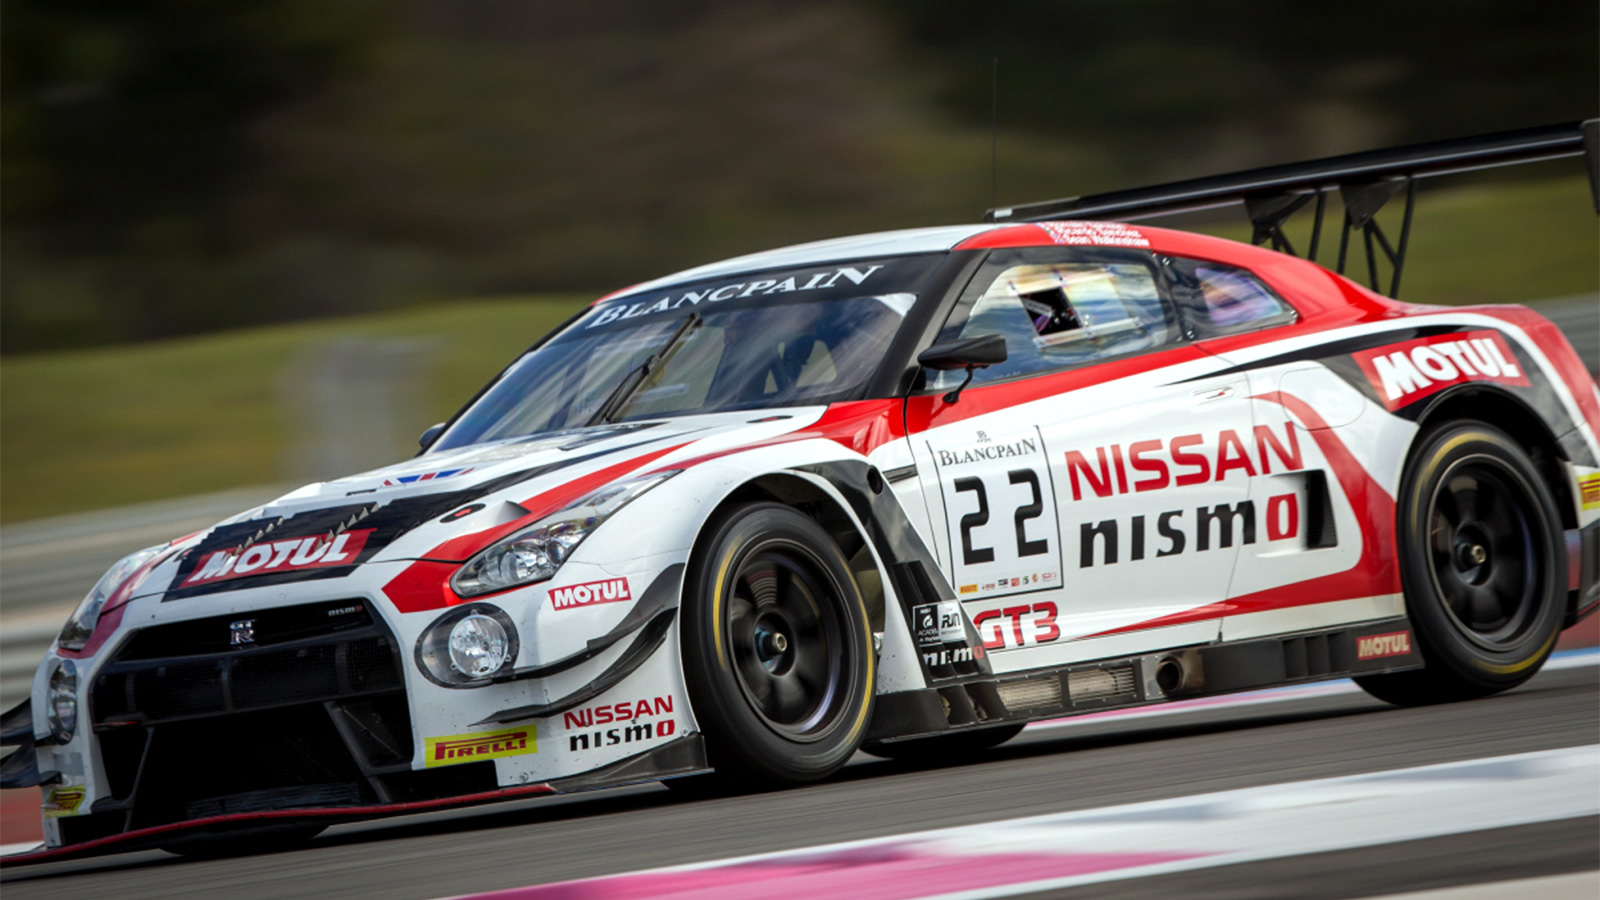 Sean got behind the wheel of his 'works' Nissan GT-R NISMOGT3 for the first time.